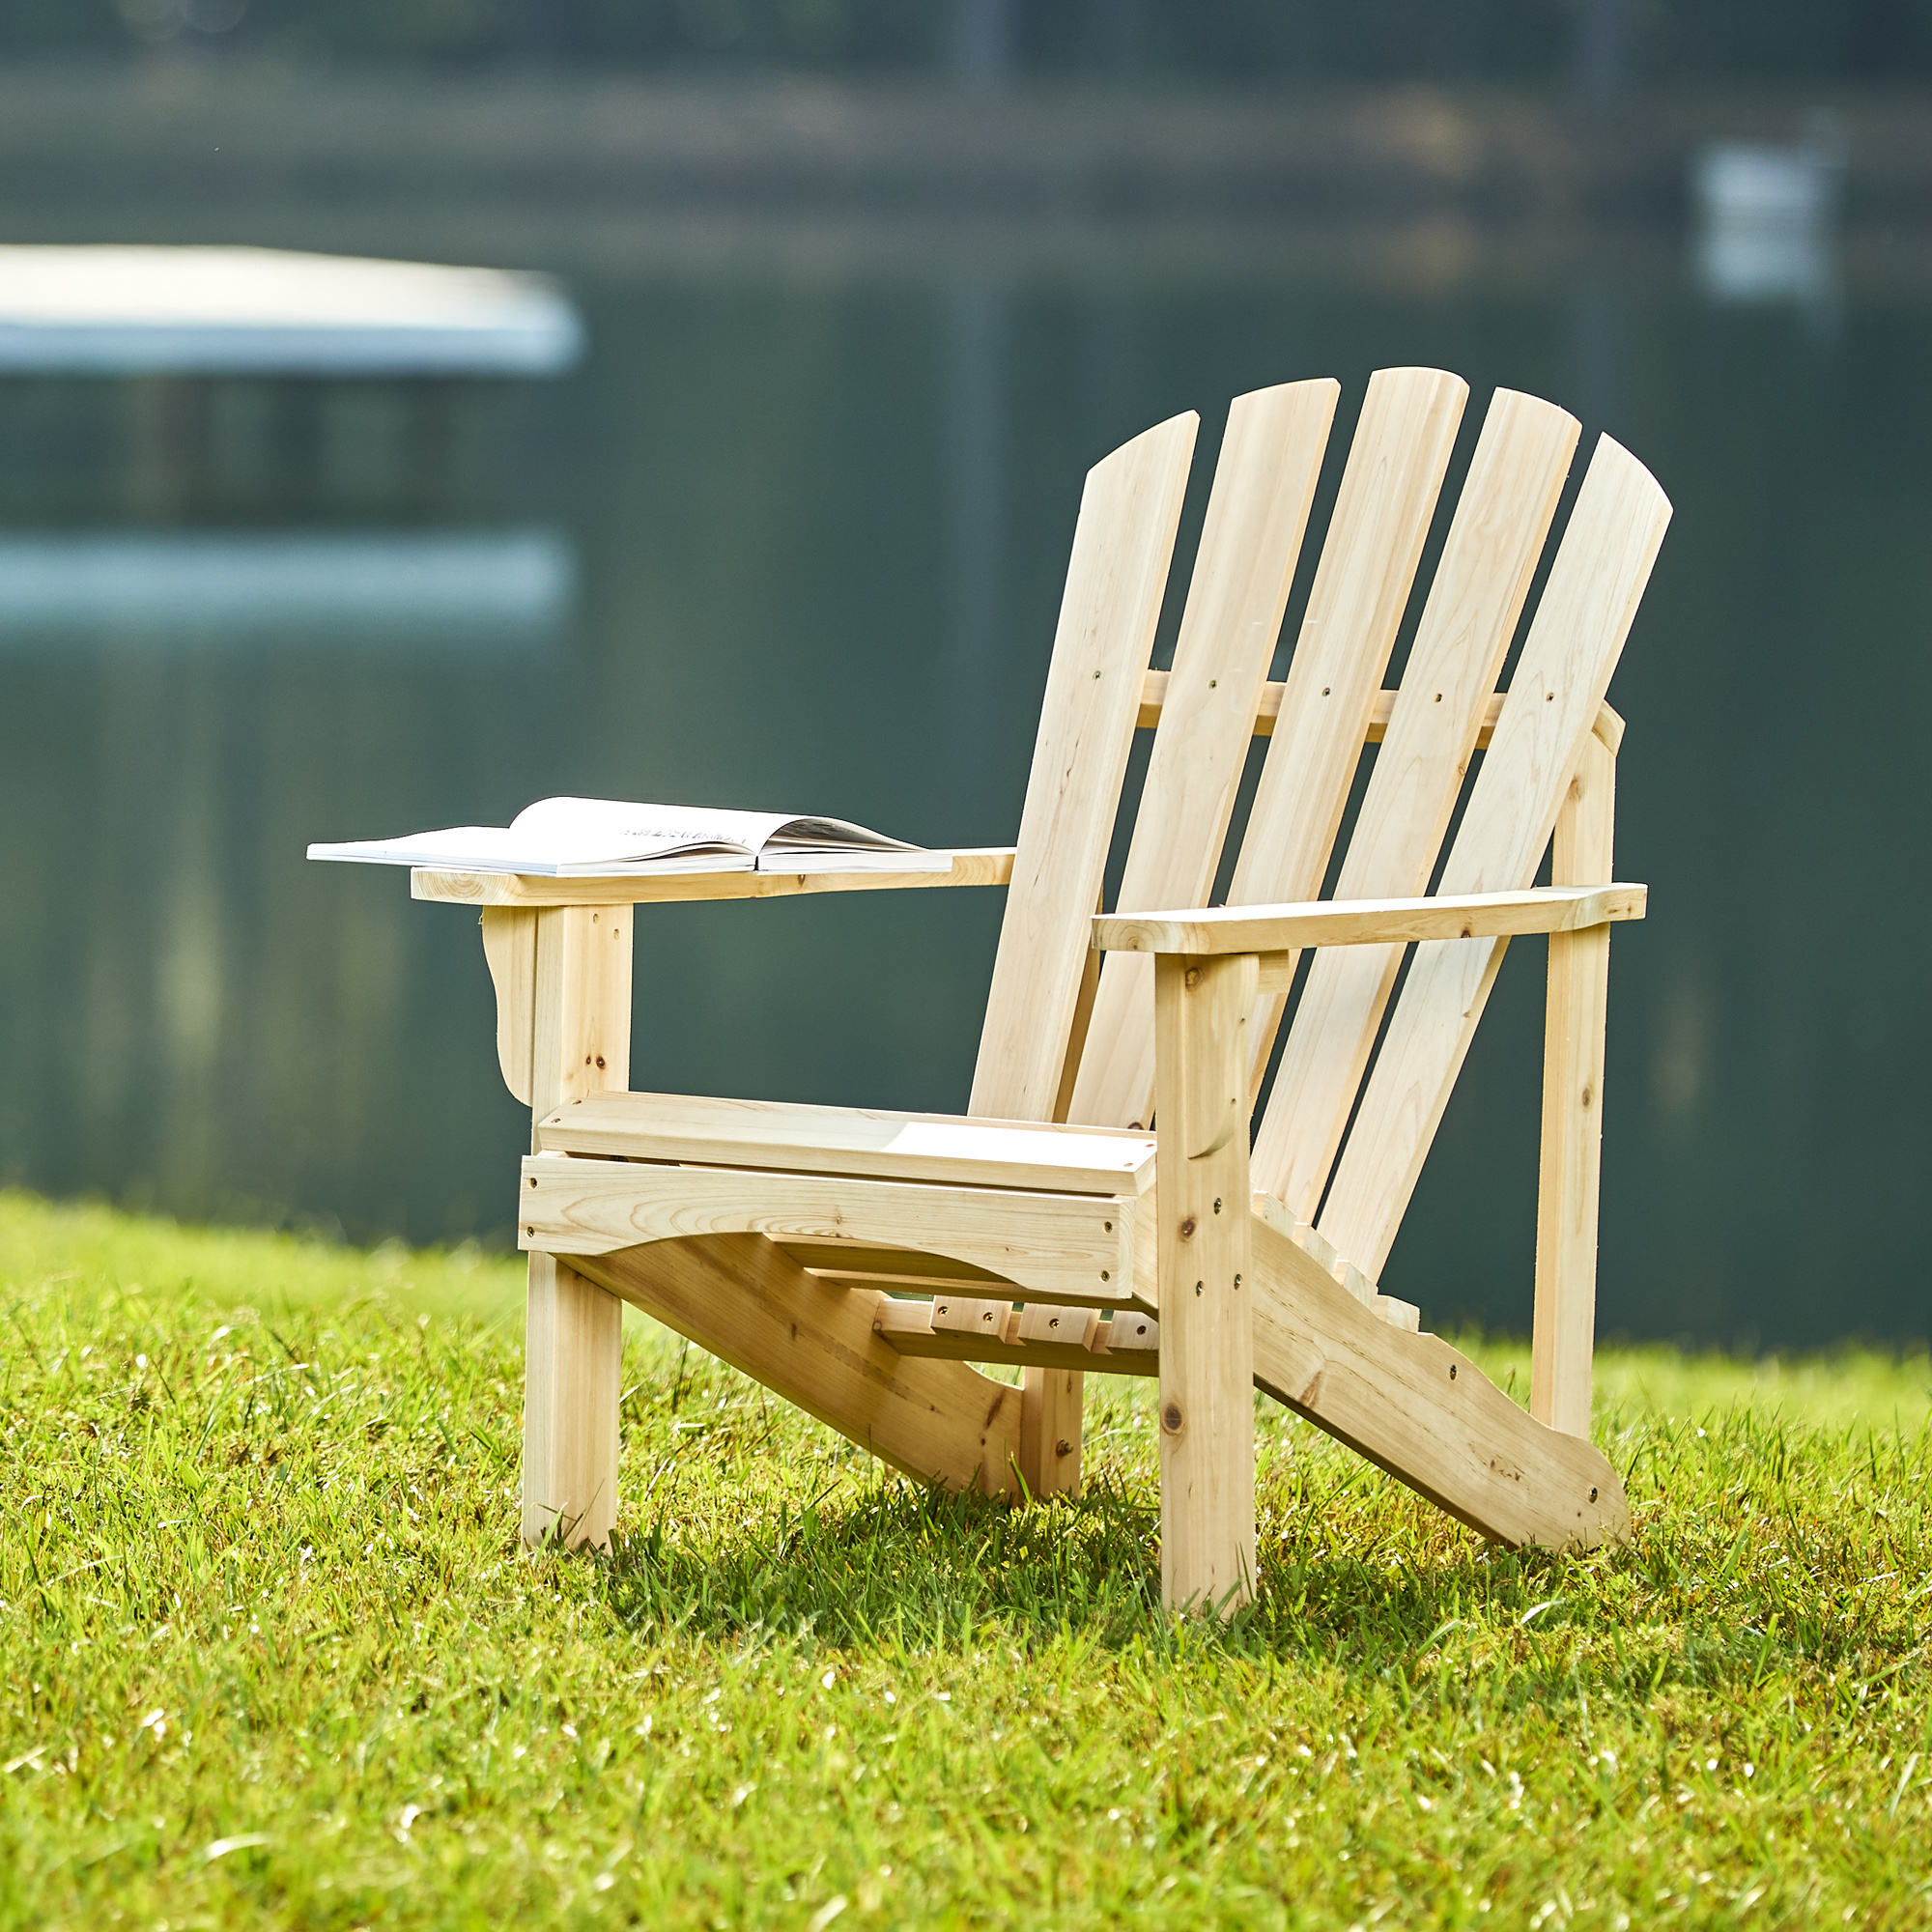 Shine Company Rockport Adirondack Chair - Natural